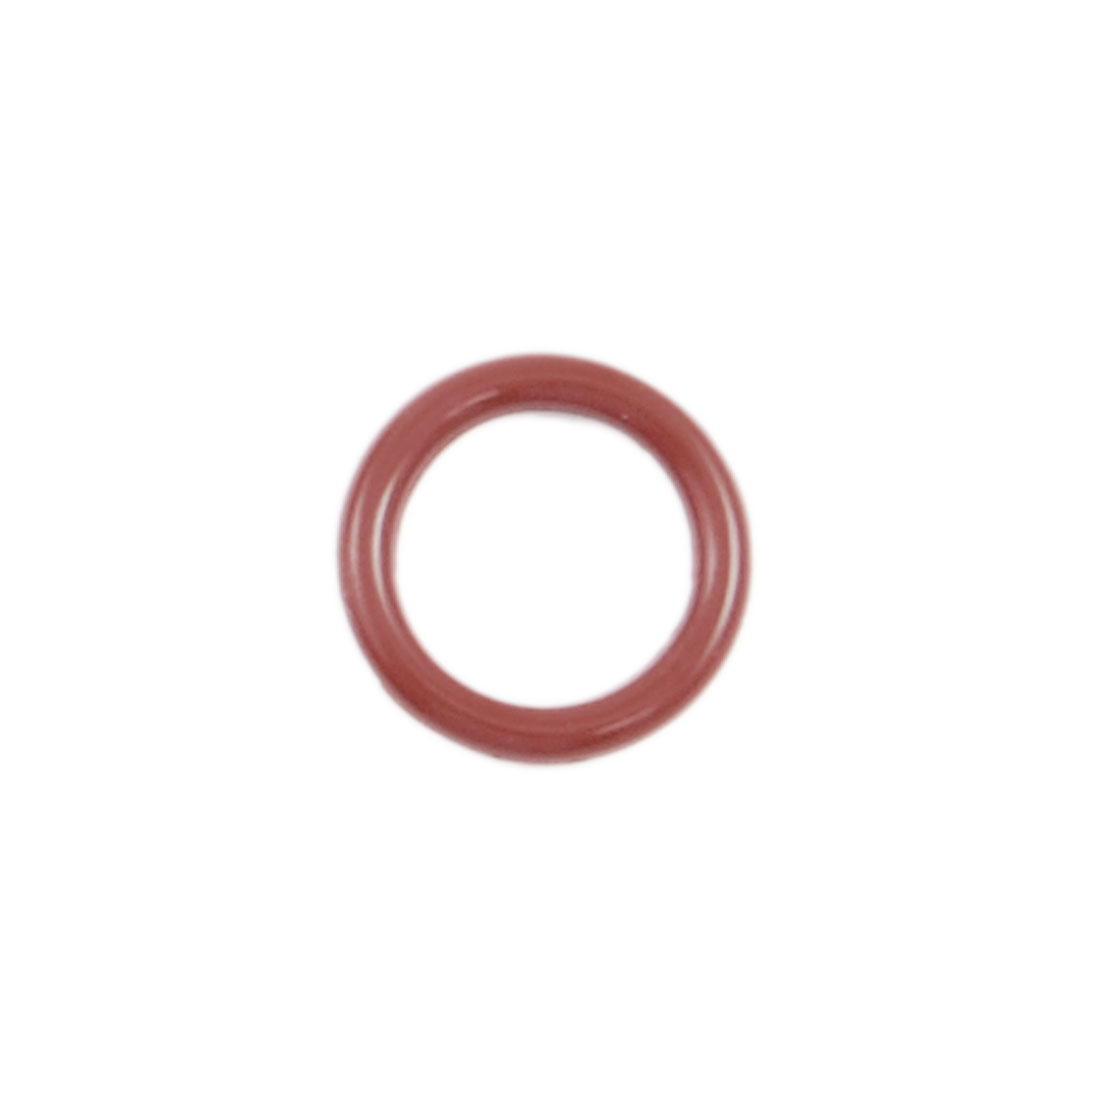 50 Pcs 14mm OD 2mm Thickness Red Silicone O Ring Oil Seals Gaskets